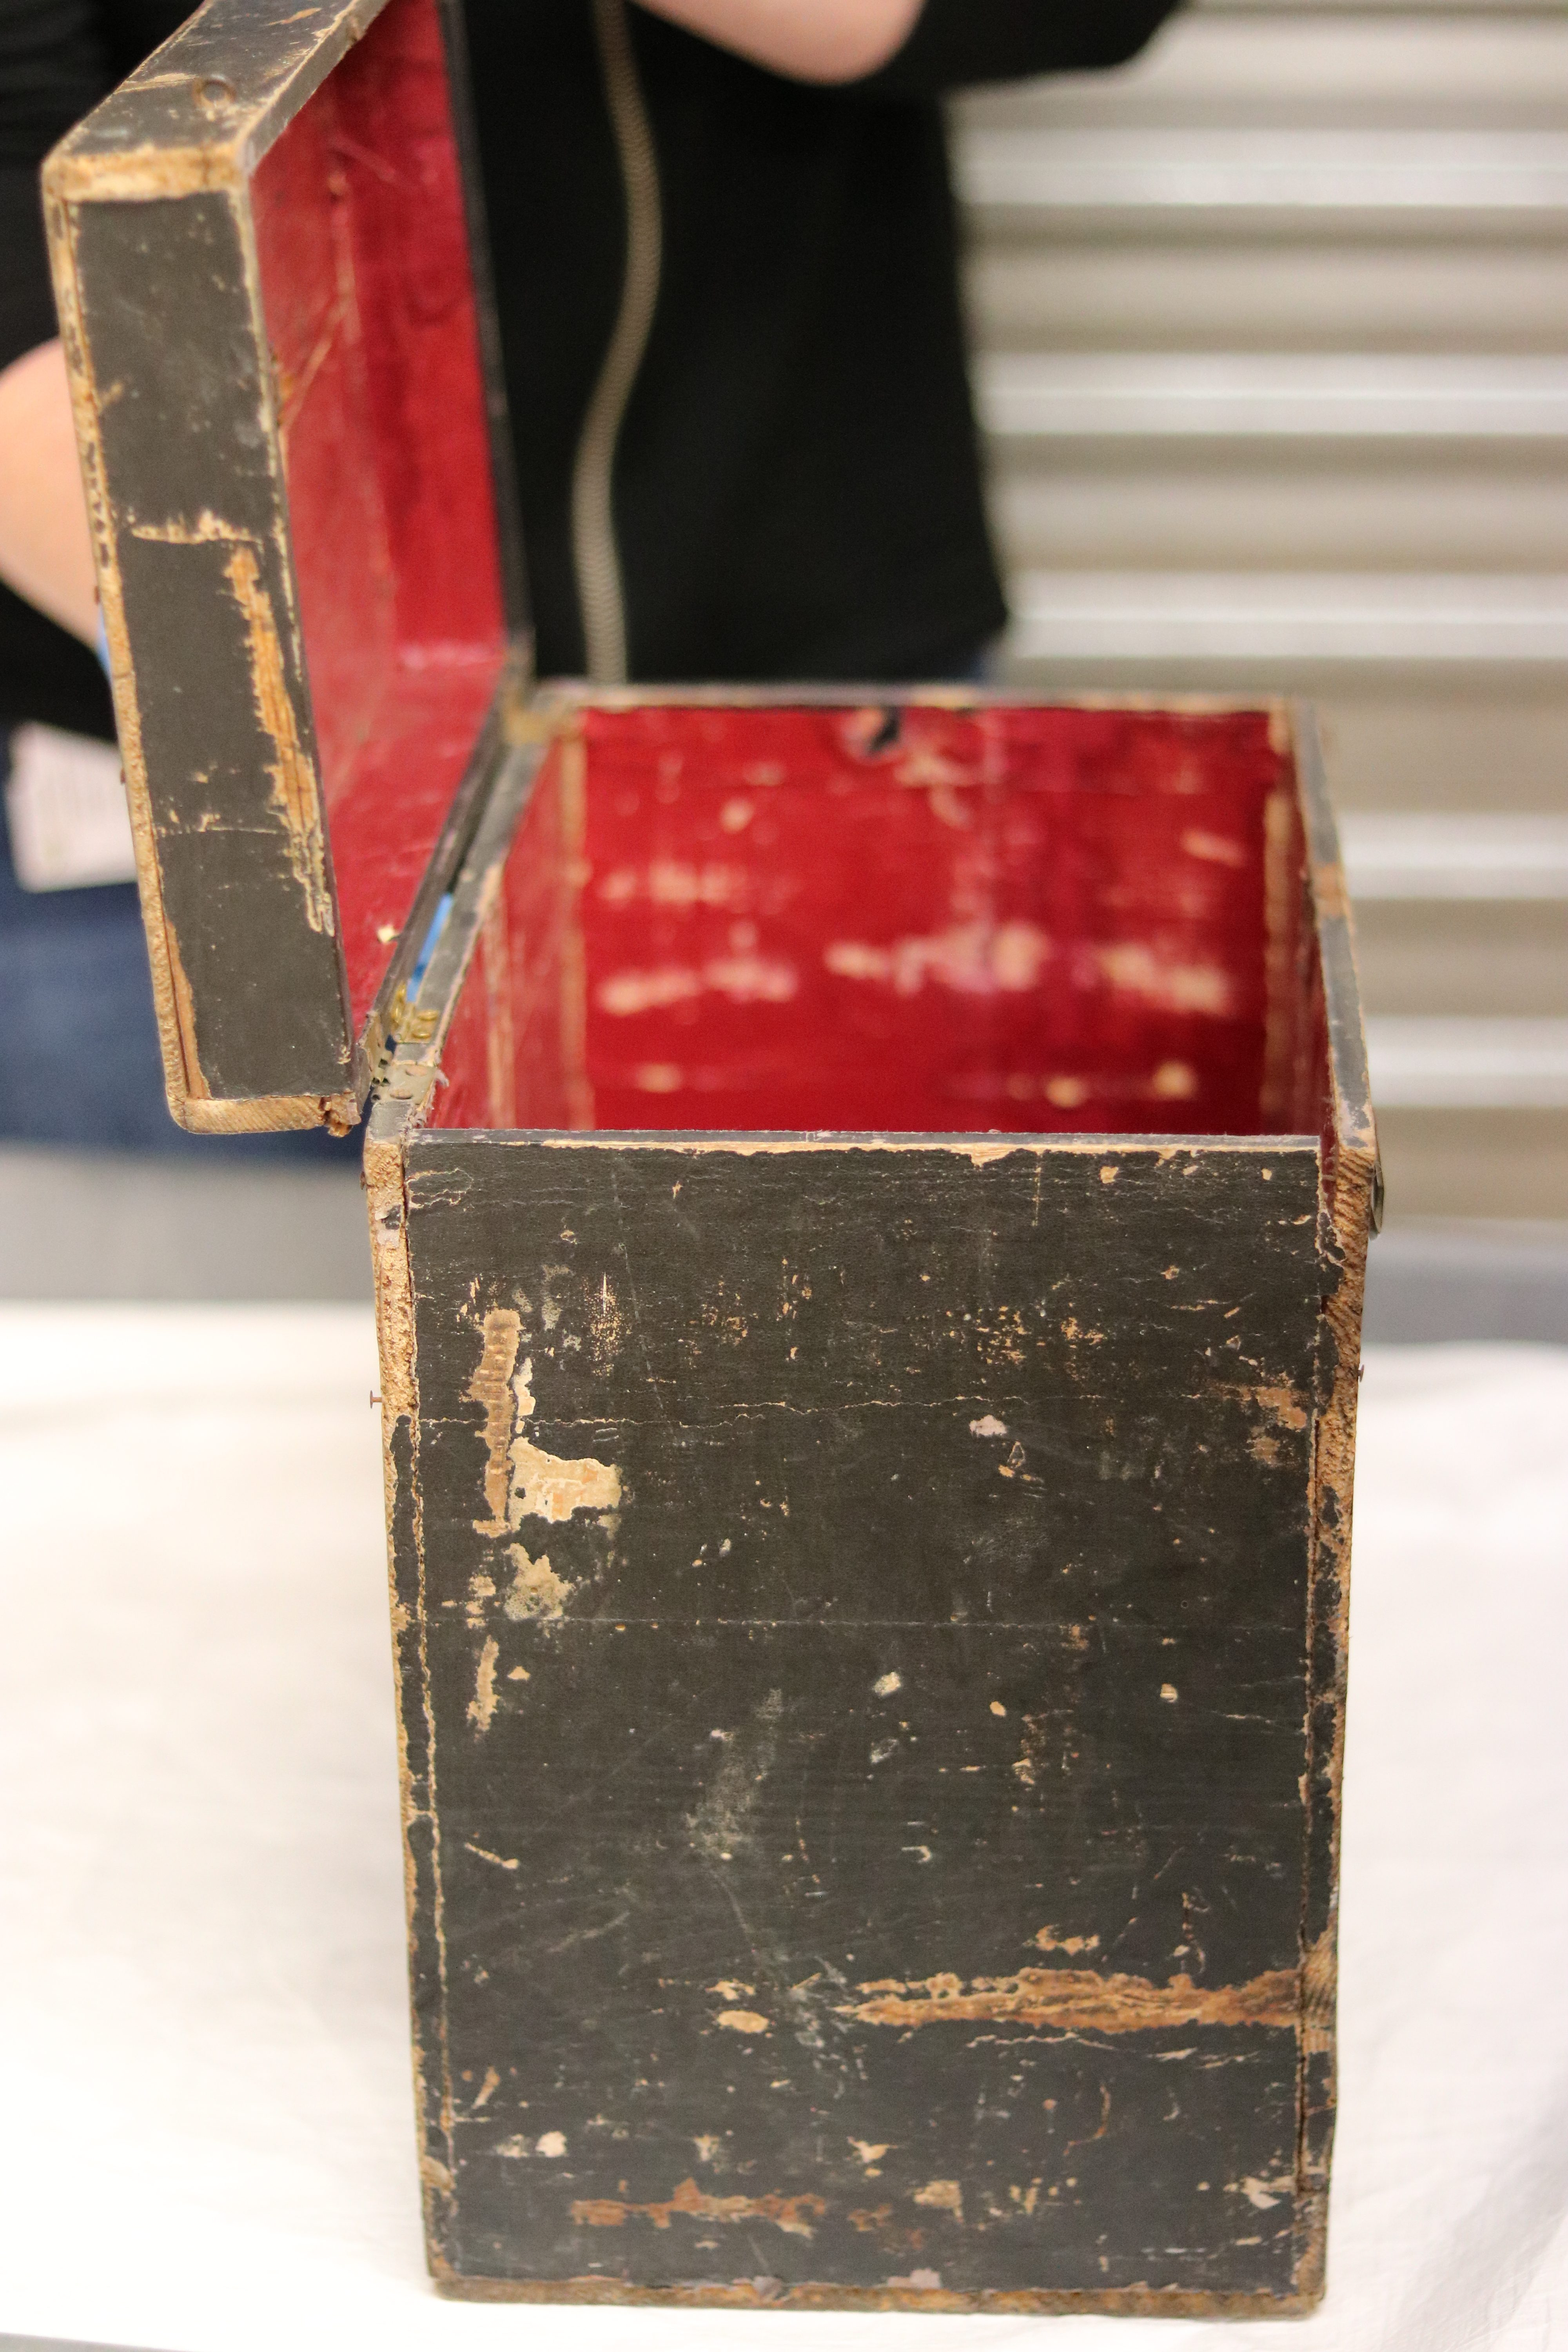 2018.91.1; Melodeon Case, A V S Dick, WWI. National Army Museum Te Mata Toa